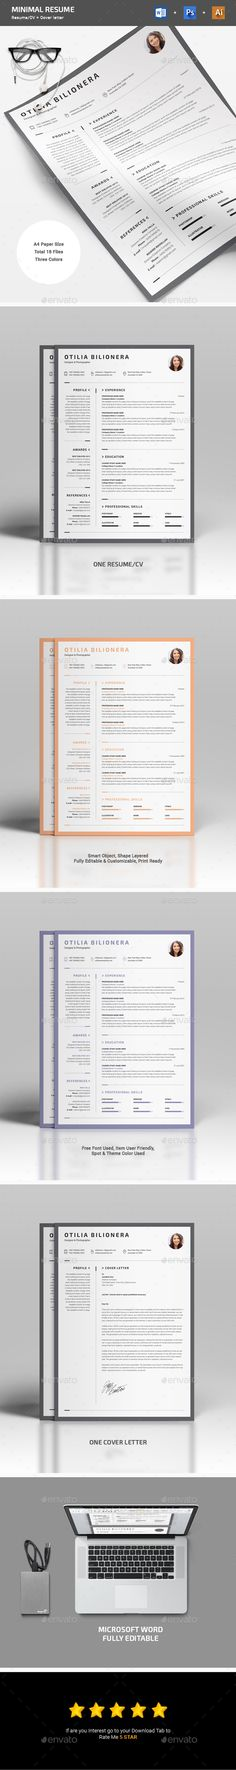 Minimal #Resume - Resumes #Stationery Download here: https://graphicriver.net/item/minimal-resume/19505101?ref=alena994